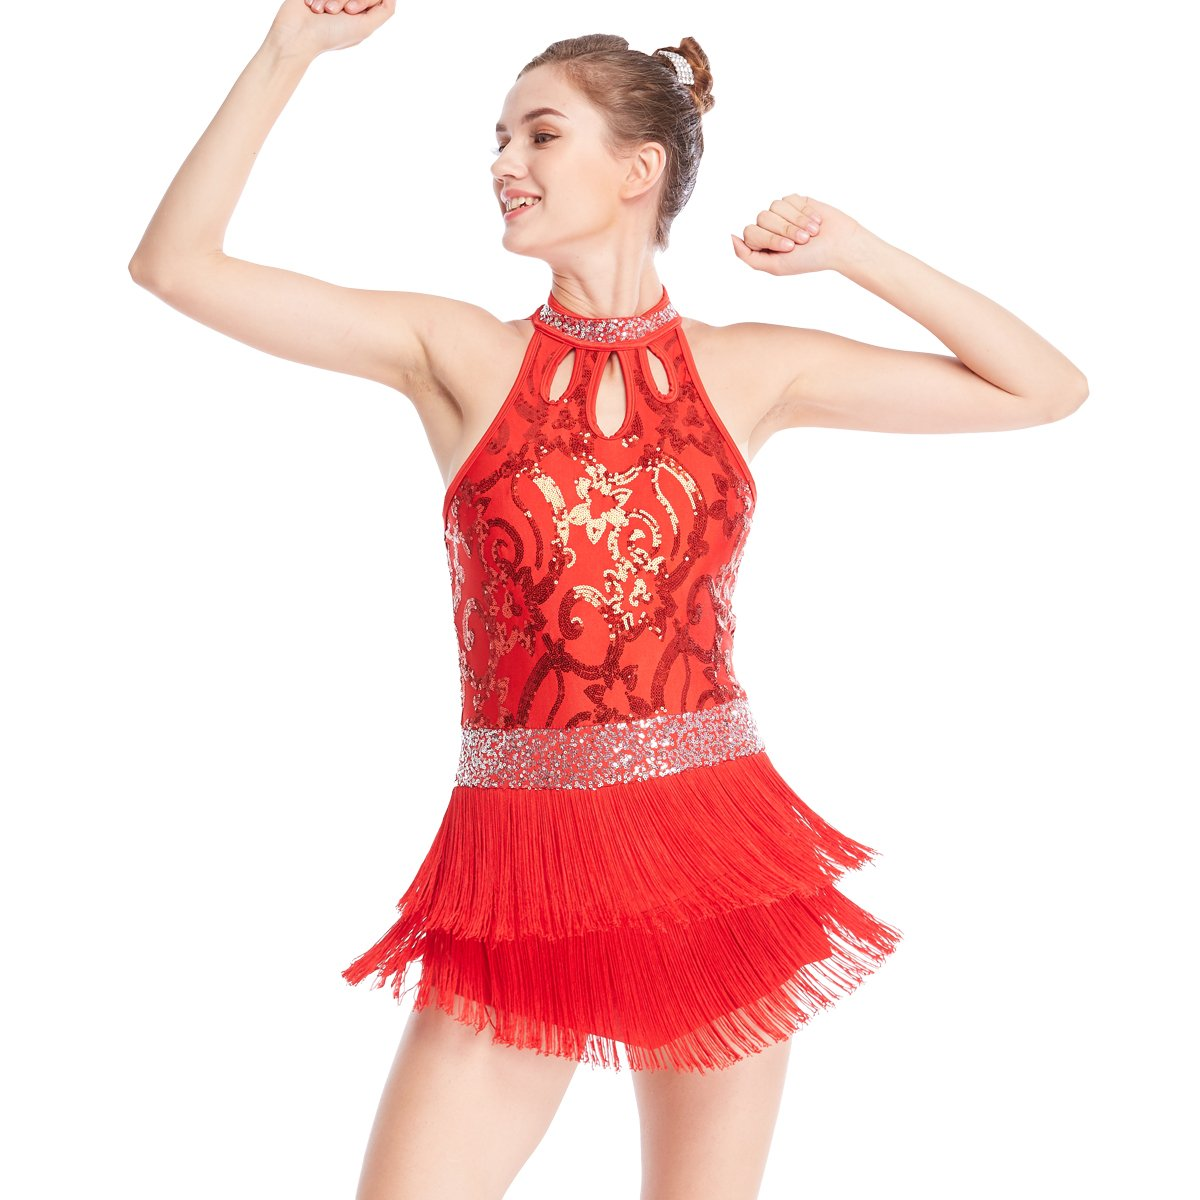 MiDee Floral Sequins Tap & Jazz Costume Mock Neck Rows Fringes Dress Dance Performance Outfits